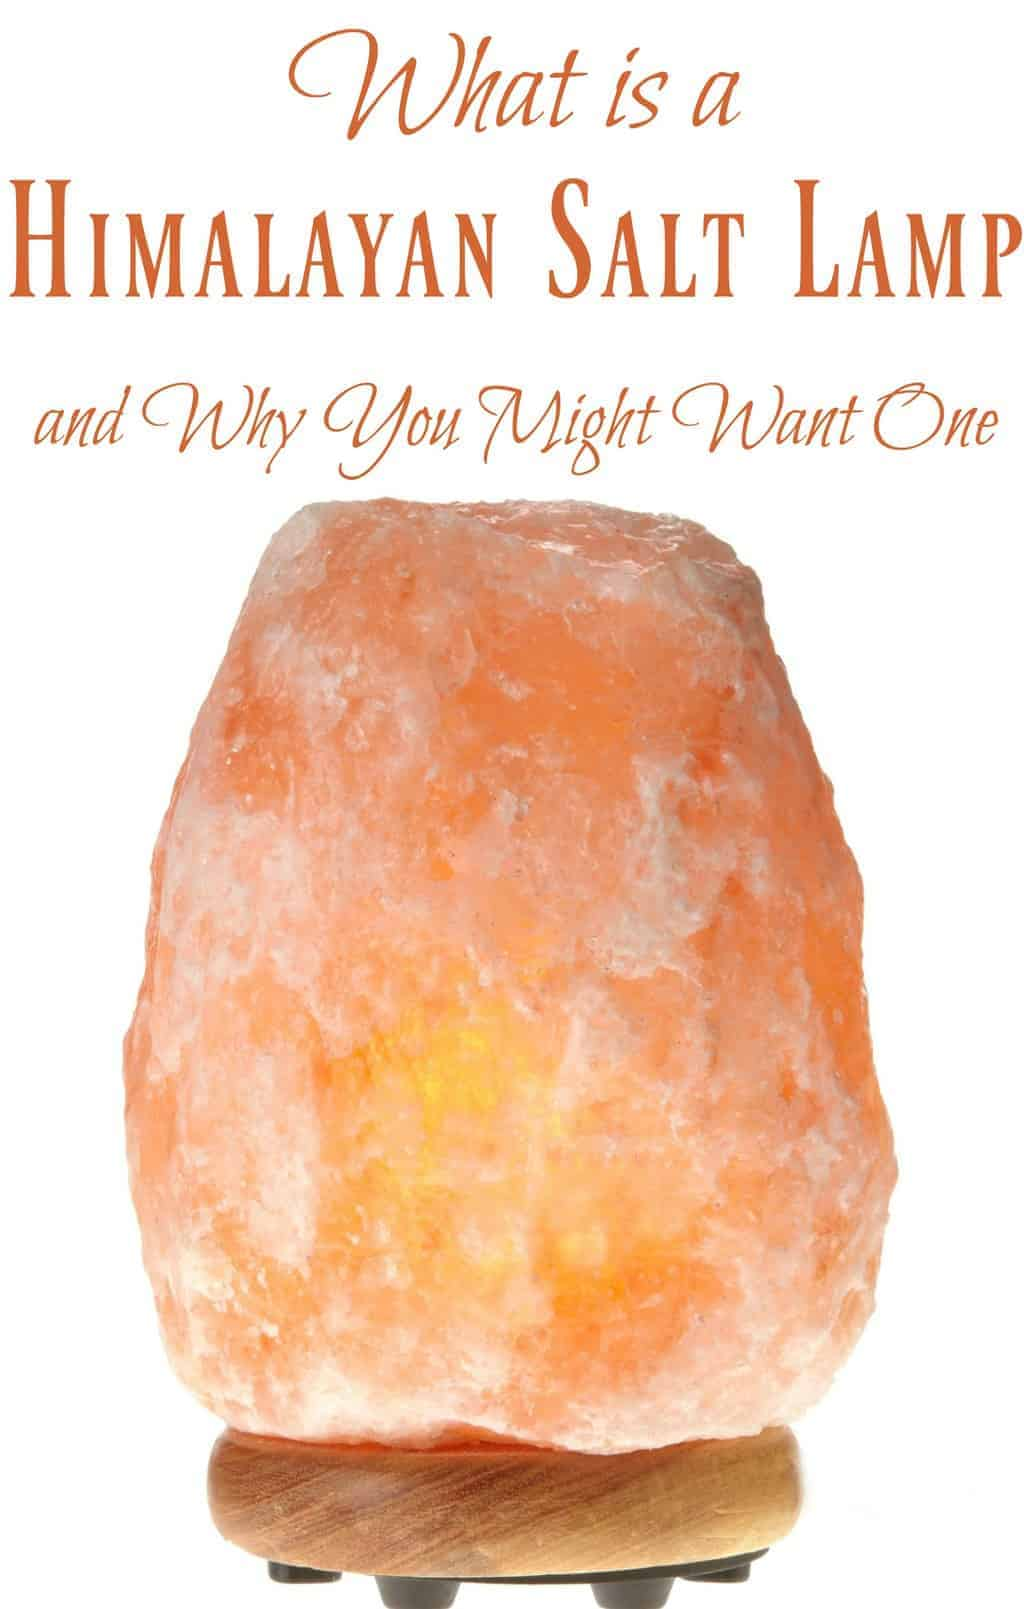 What is a Himalayan Salt Lamp and Why You Might Want One - Learn how it can help: Decrease allergy symptoms, Decrease in asthma symptoms, Support the immune system, Increase a more positive mood, Increase energy, Decrease migraines, & Help alleviate depression. #saltlamps #himalayansalt #allergies #natural #home